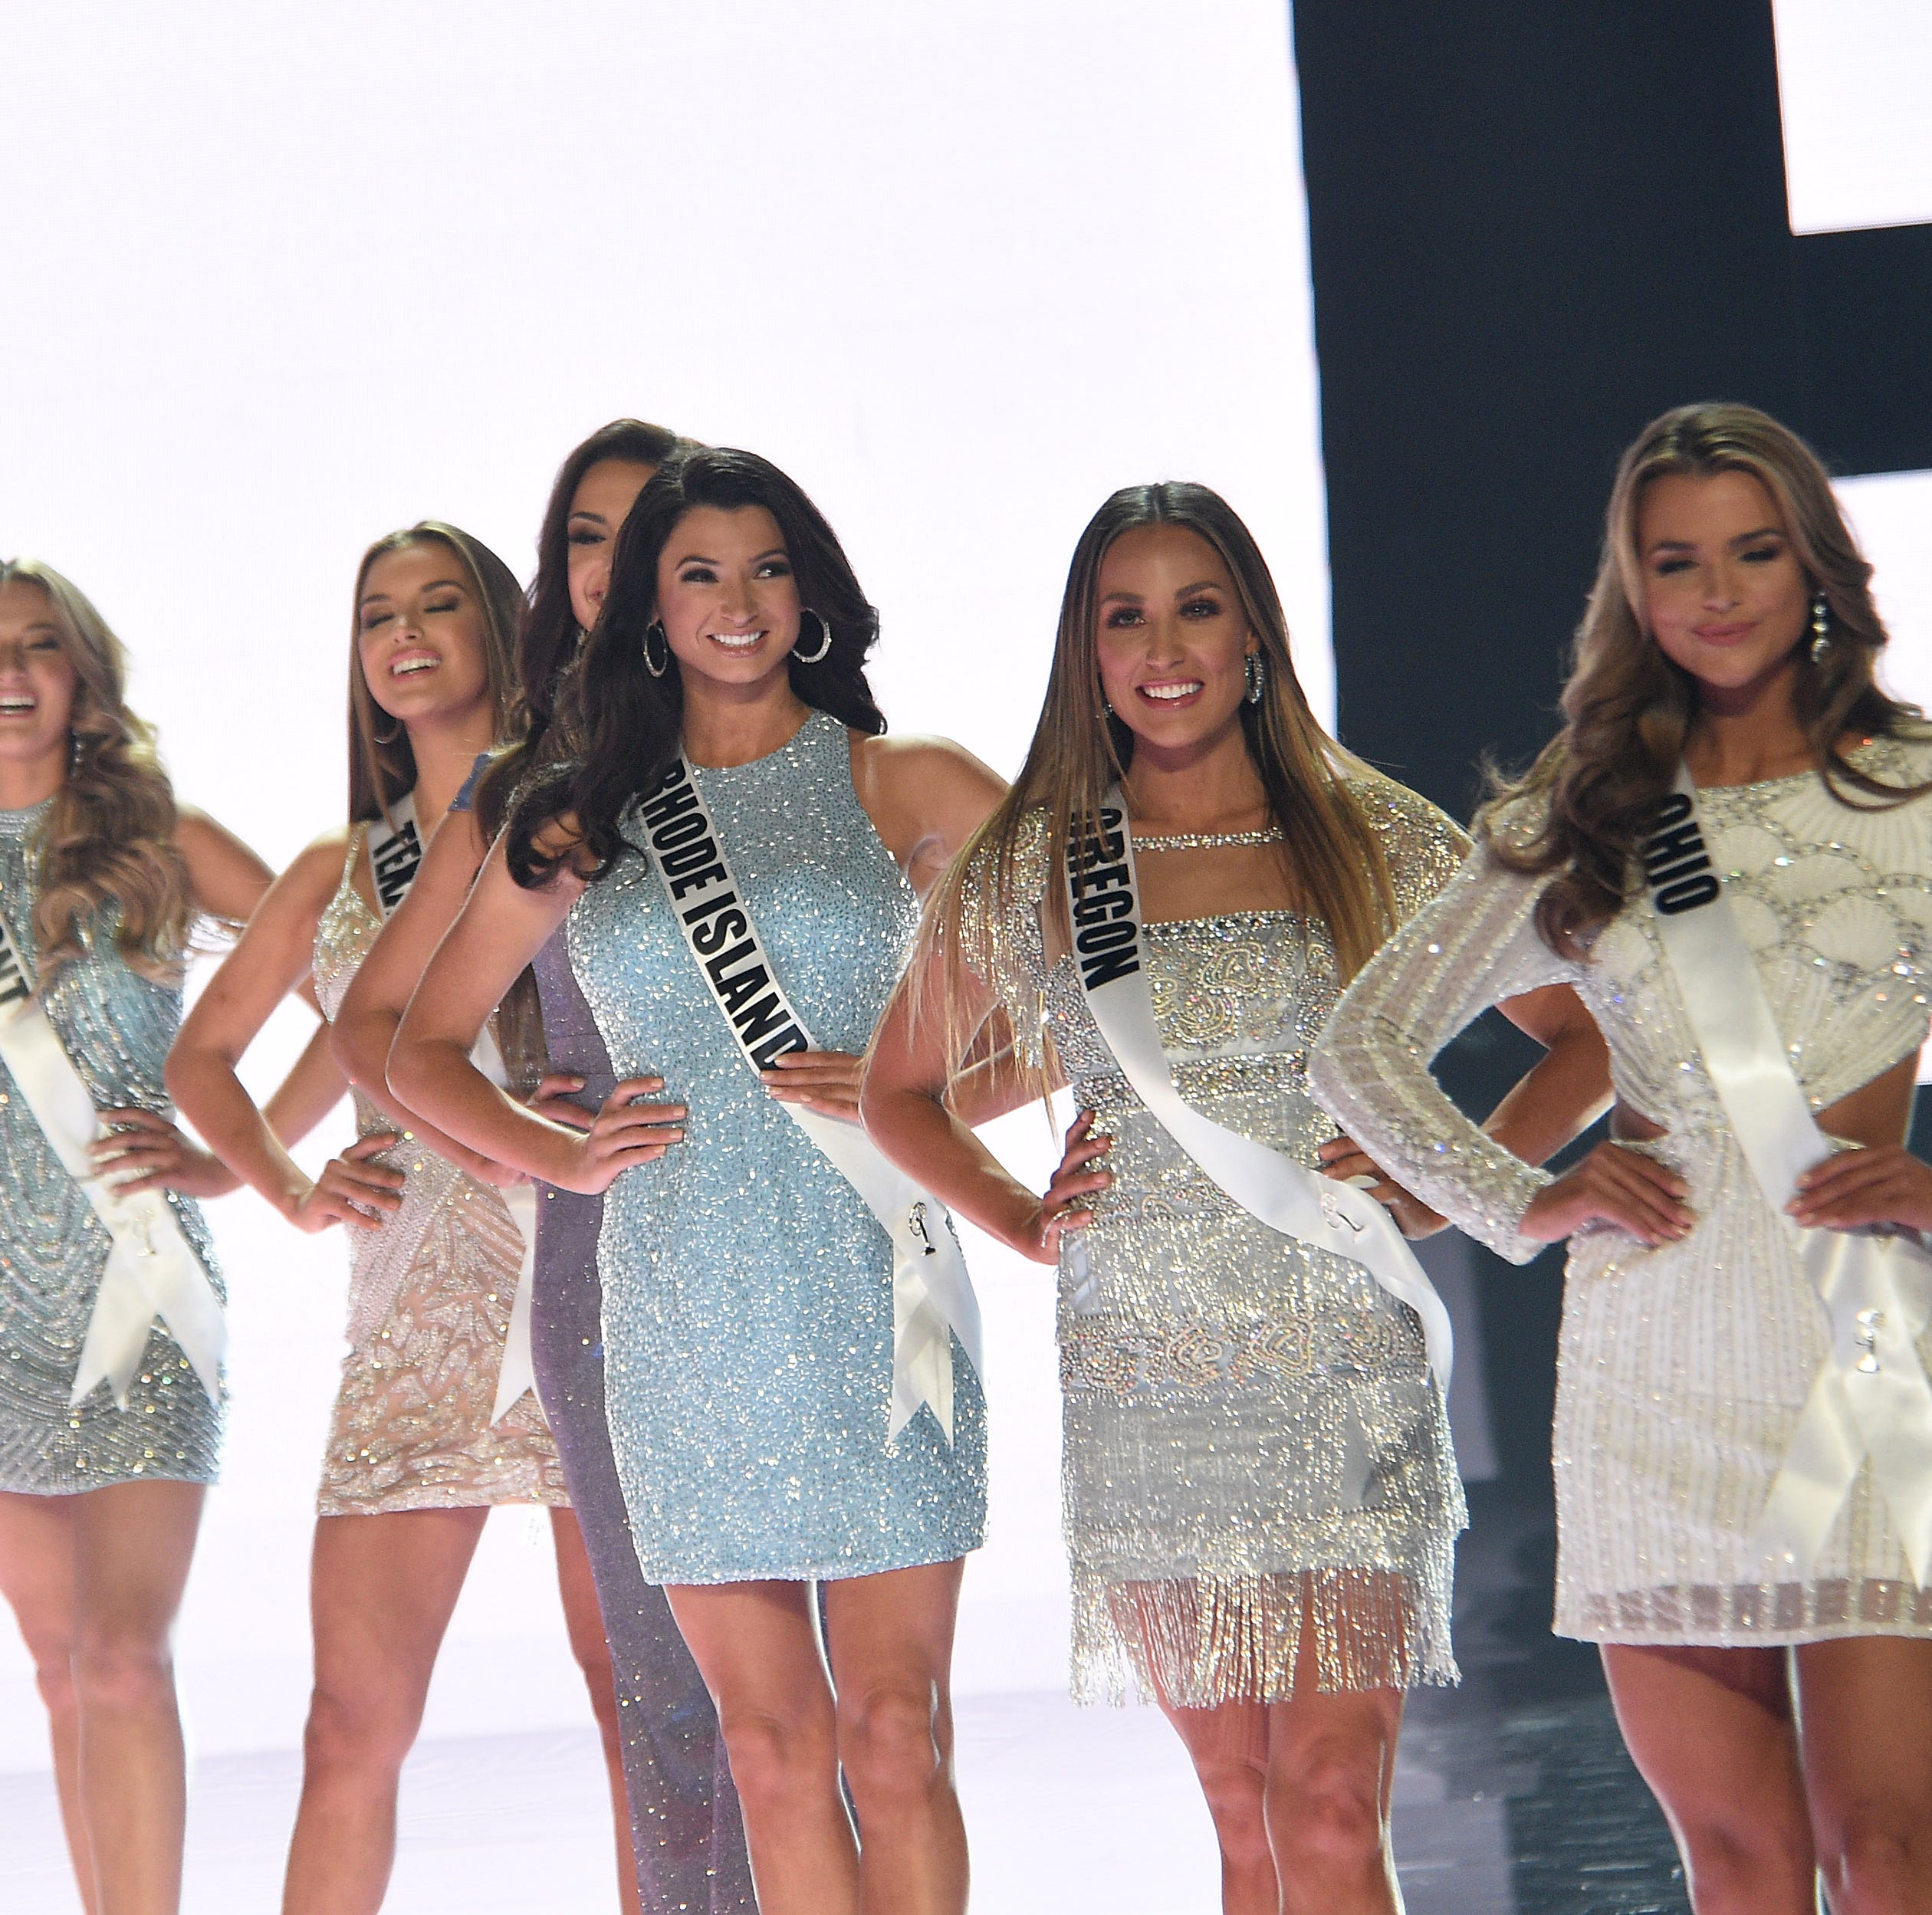 Miss USA pageant gets political with questions on immigration, gun violence